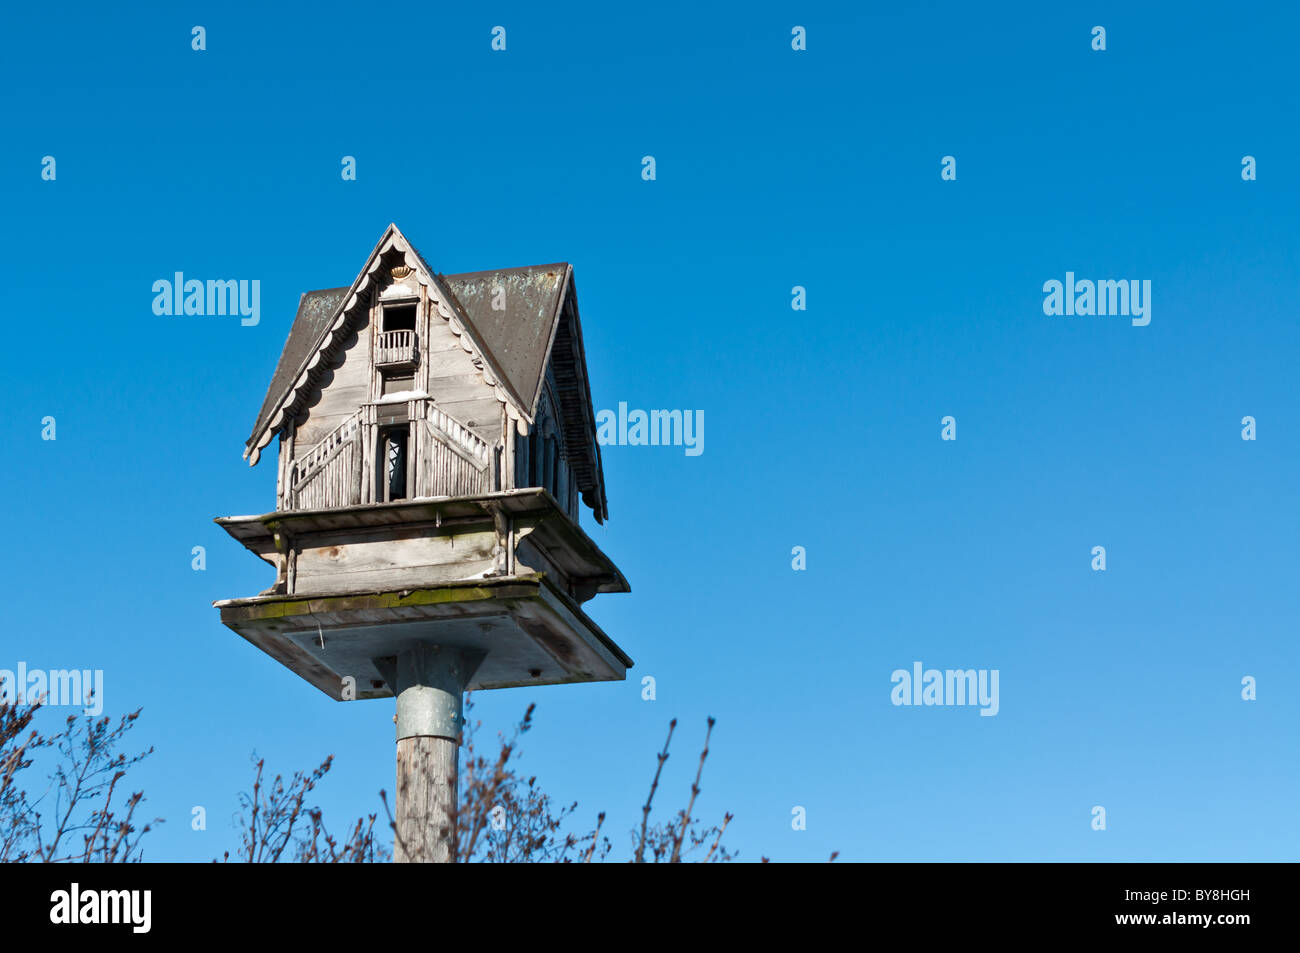 A birdhouse sits atop a pole with a deep blue sky in the background. - Stock Image